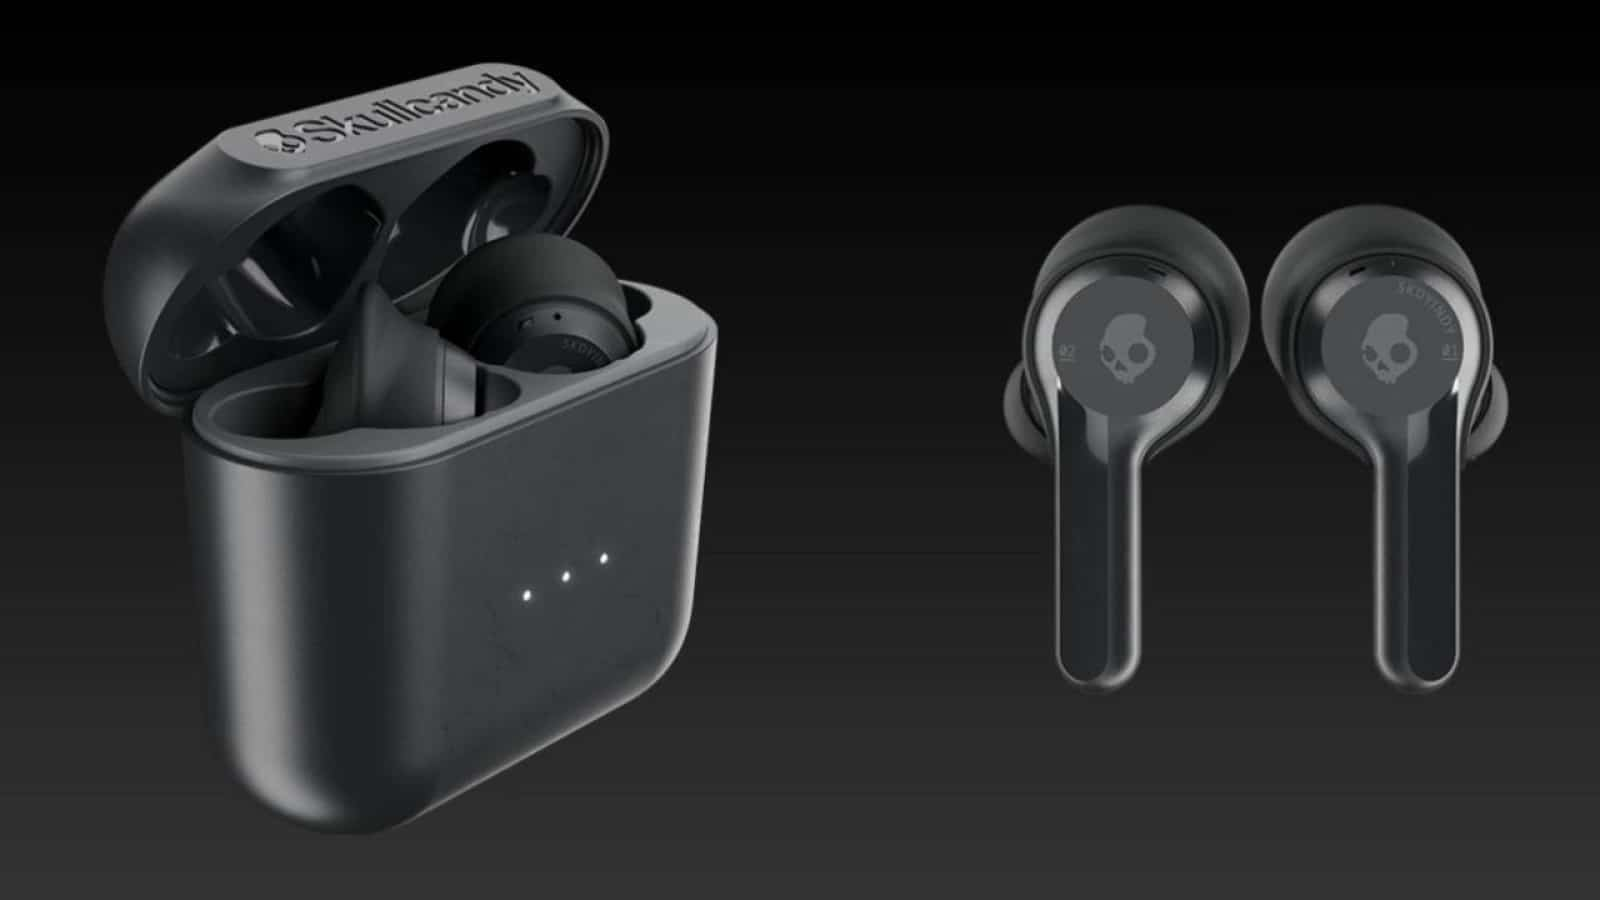 Skullcandy made a pair of $80 AirPods that you'll actually buy